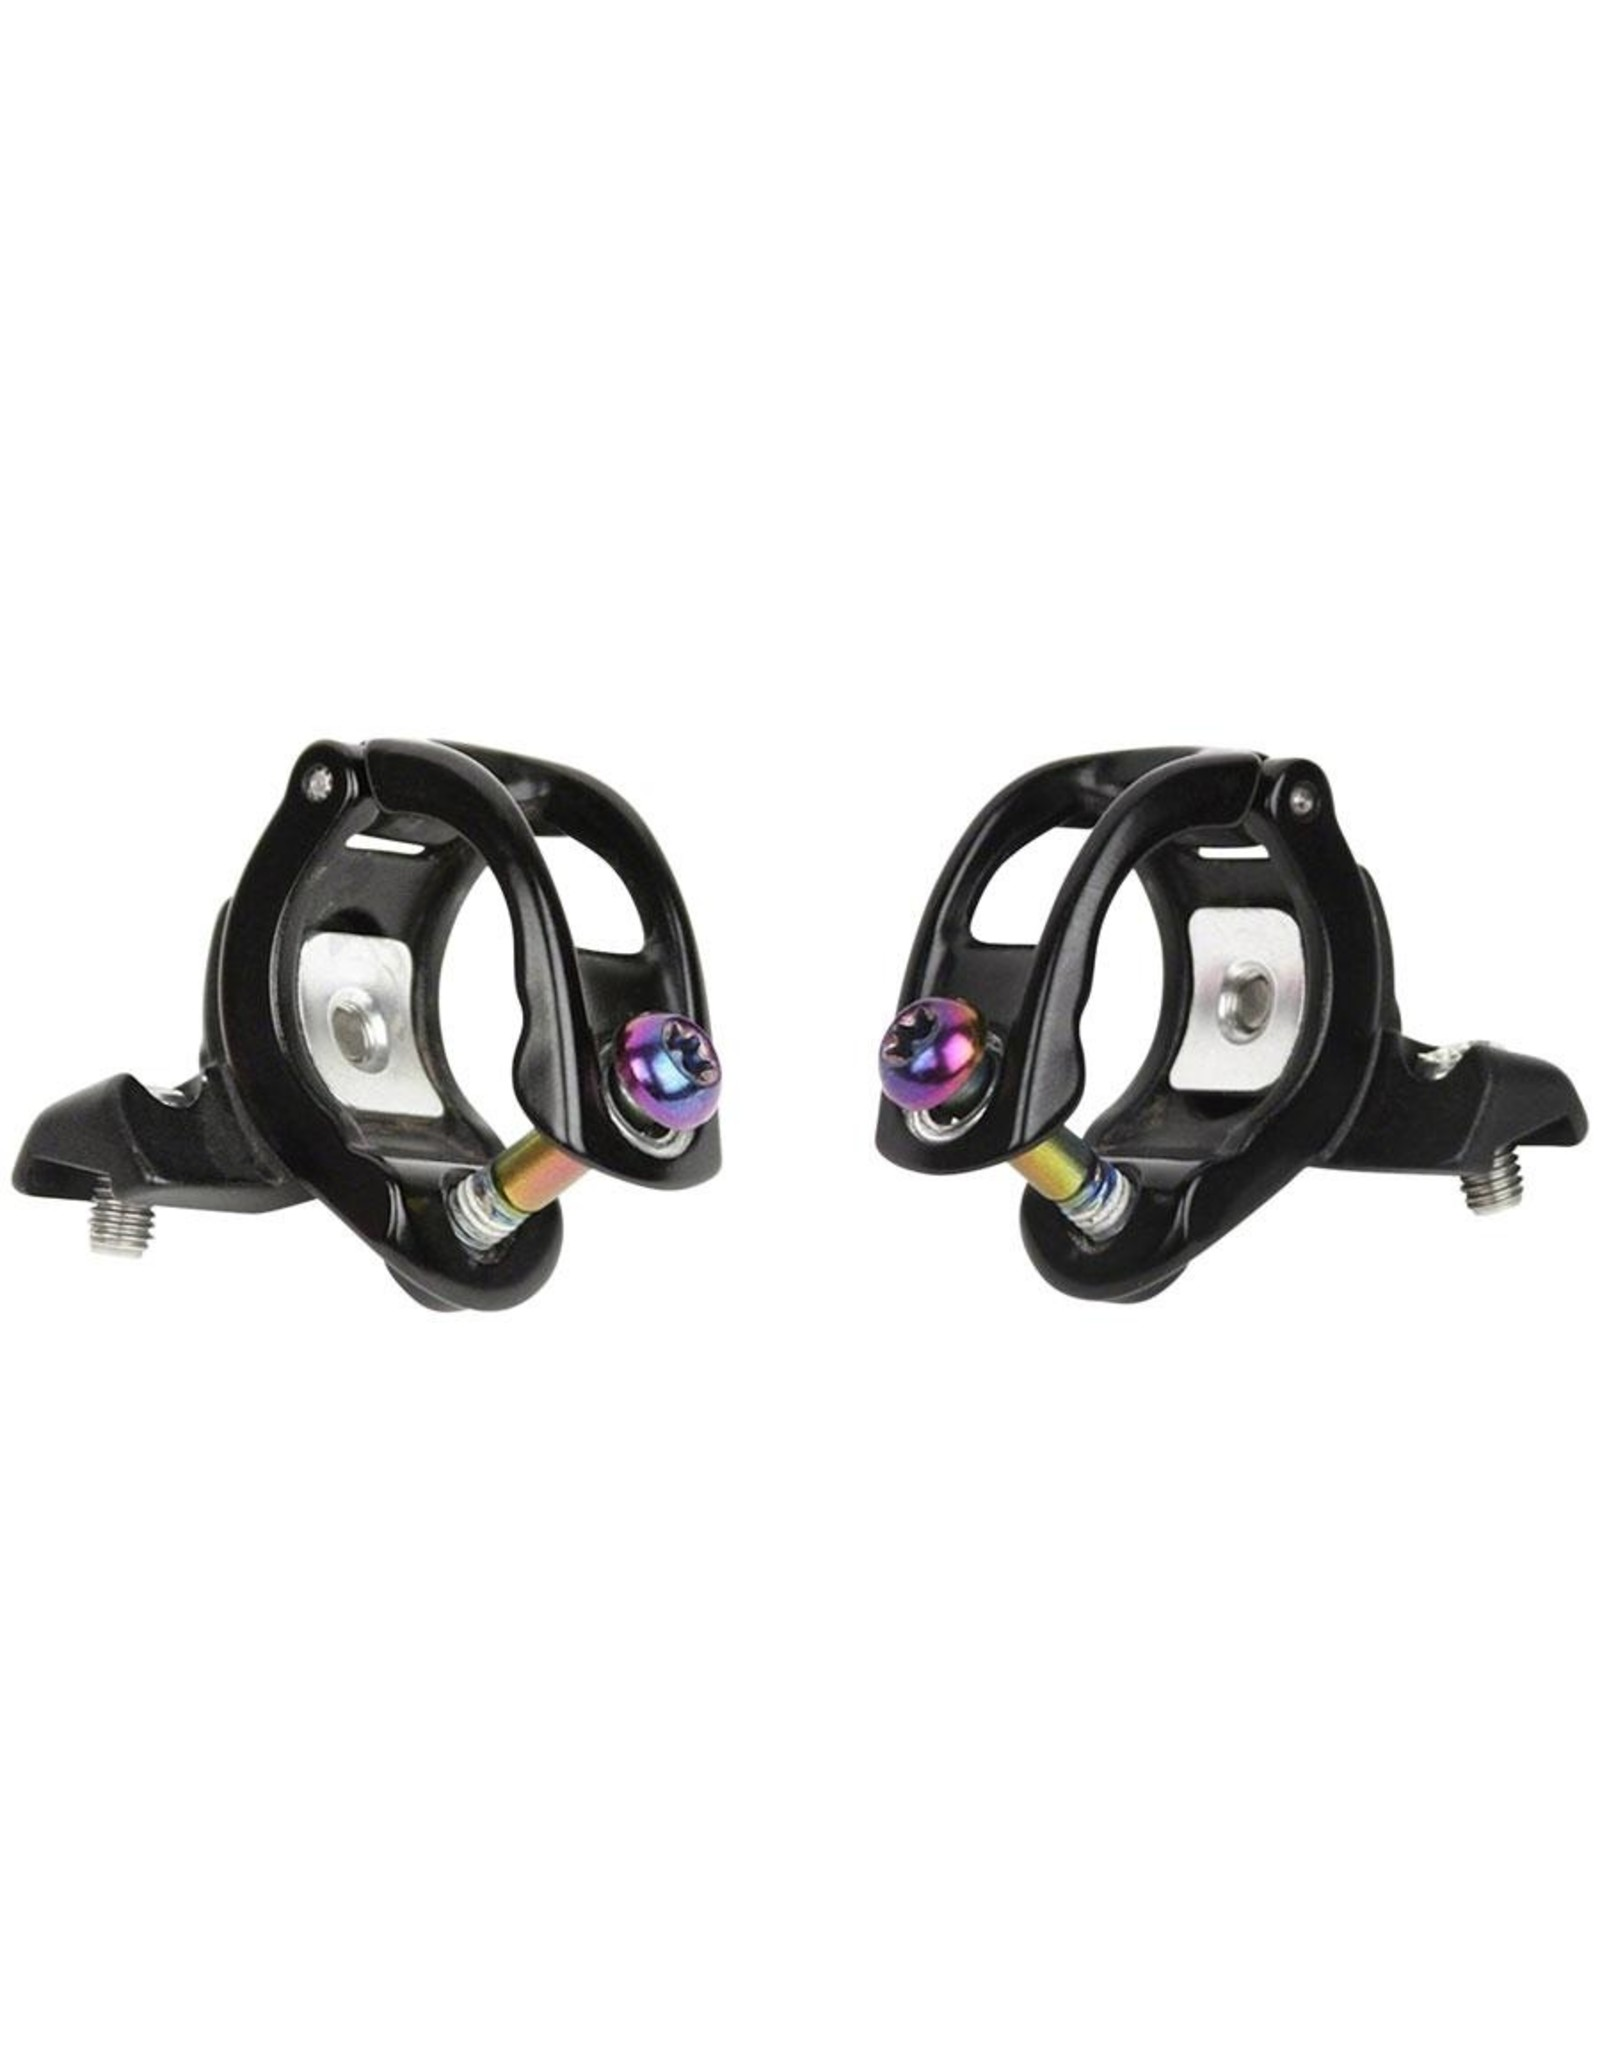 SRAM SRAM MatchMaker X Stainless T25 - Rainbow, Set of 2, Compatible with all MMX Shifters